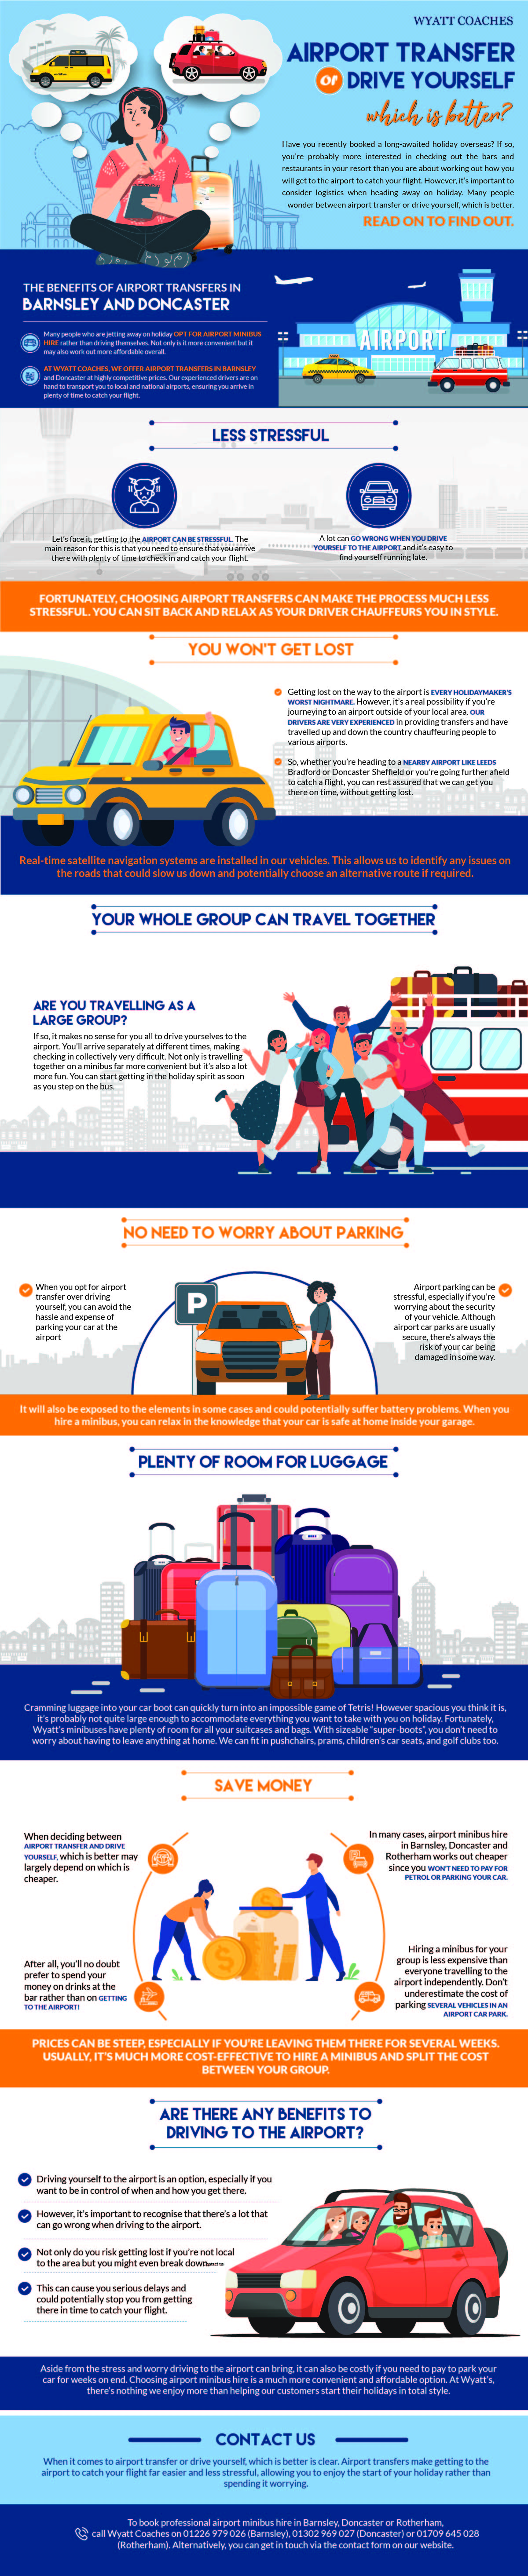 Airport transfer or drive yourself – which is better? [Infographic]